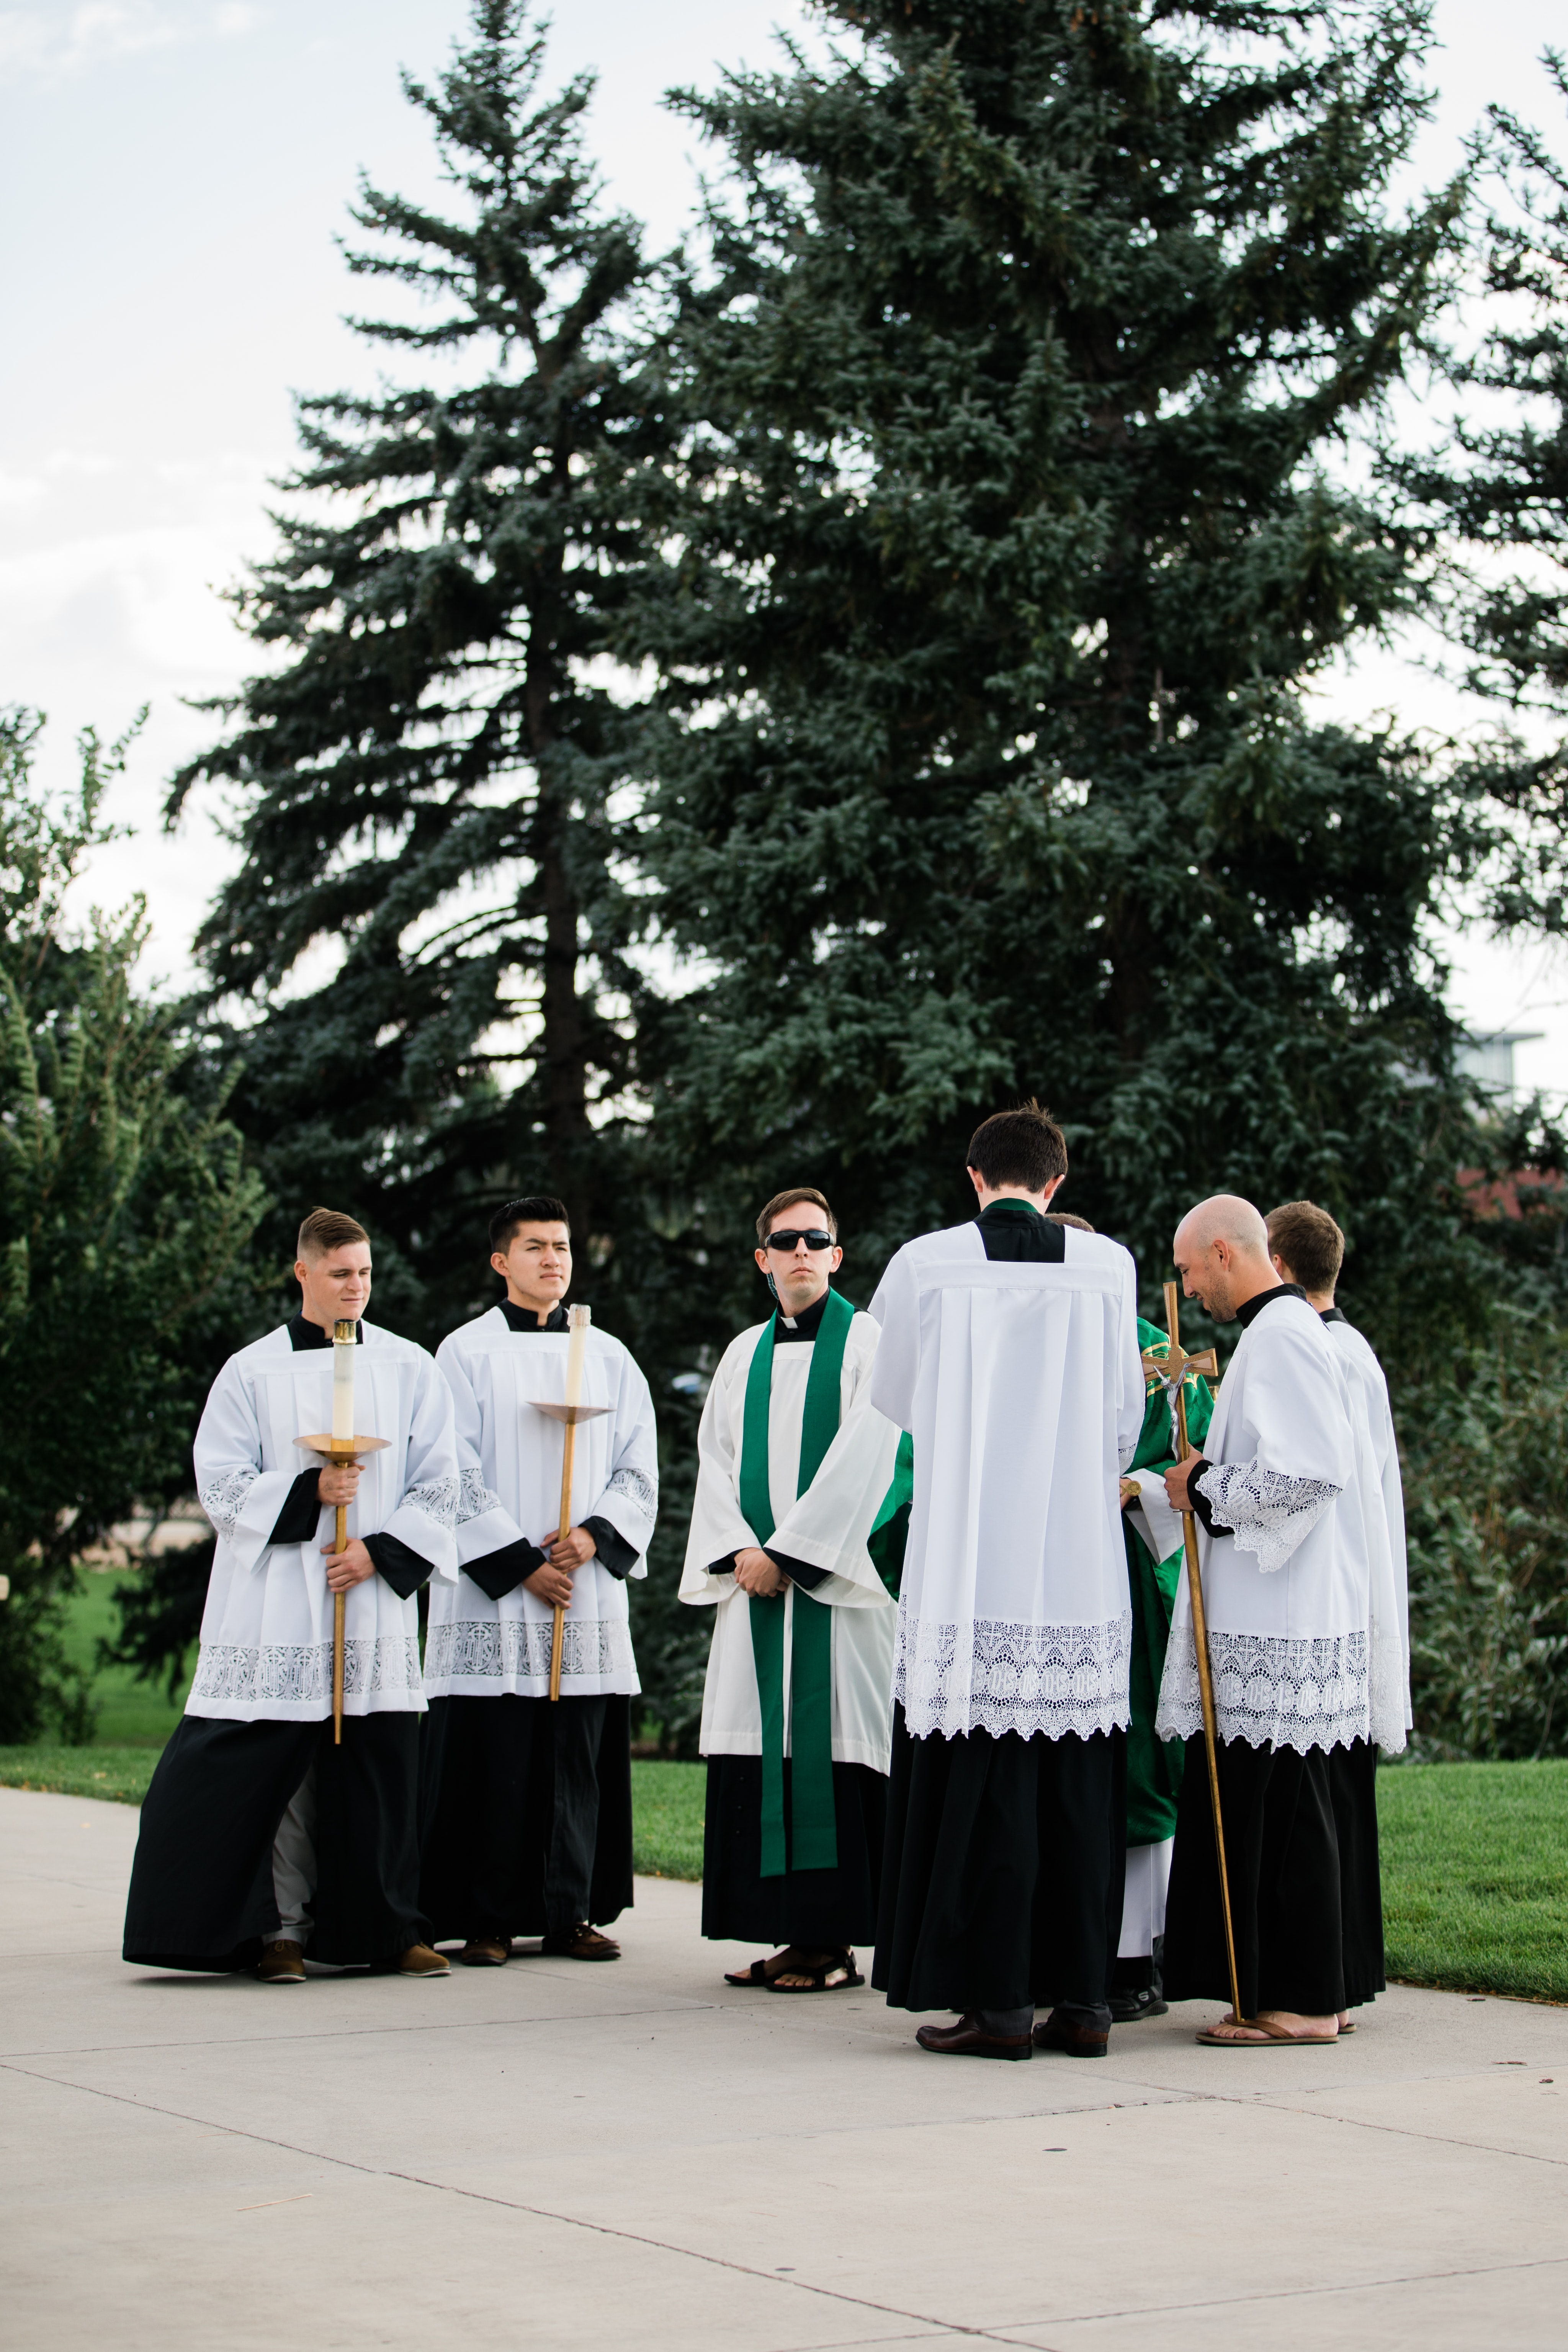 priests and altar boys standing on concreted pavement